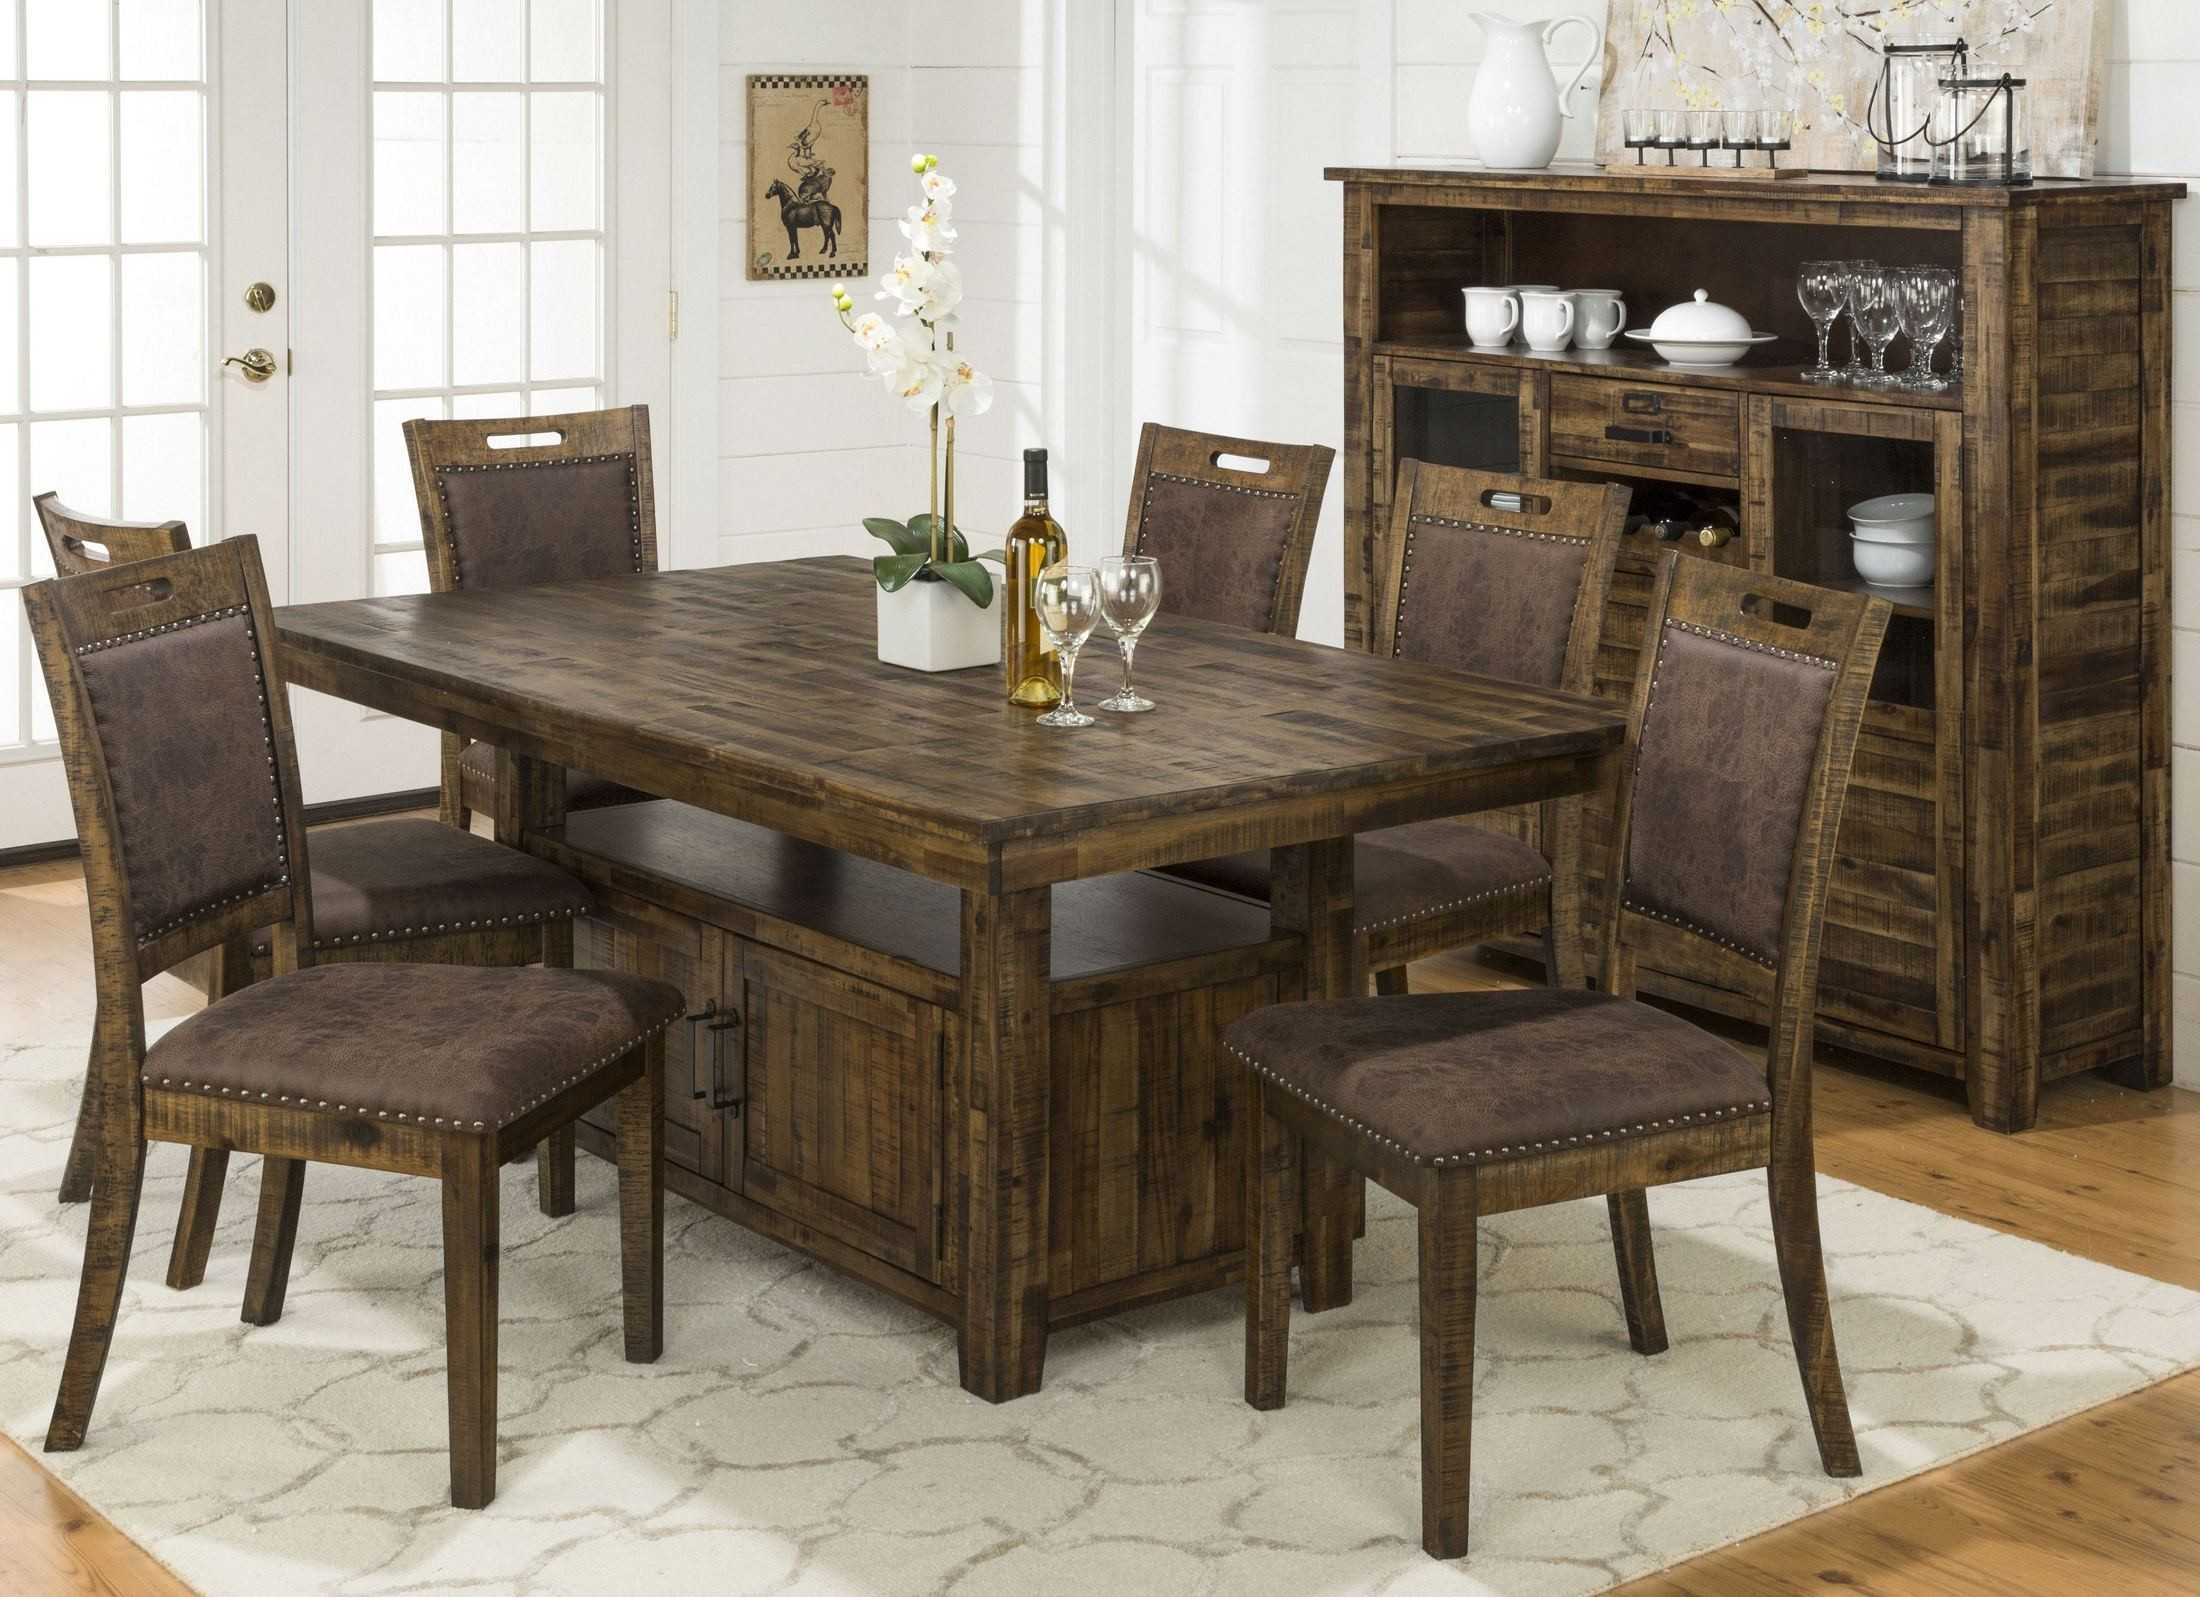 Cannon Valley Adjustable Height Storage Dining Room